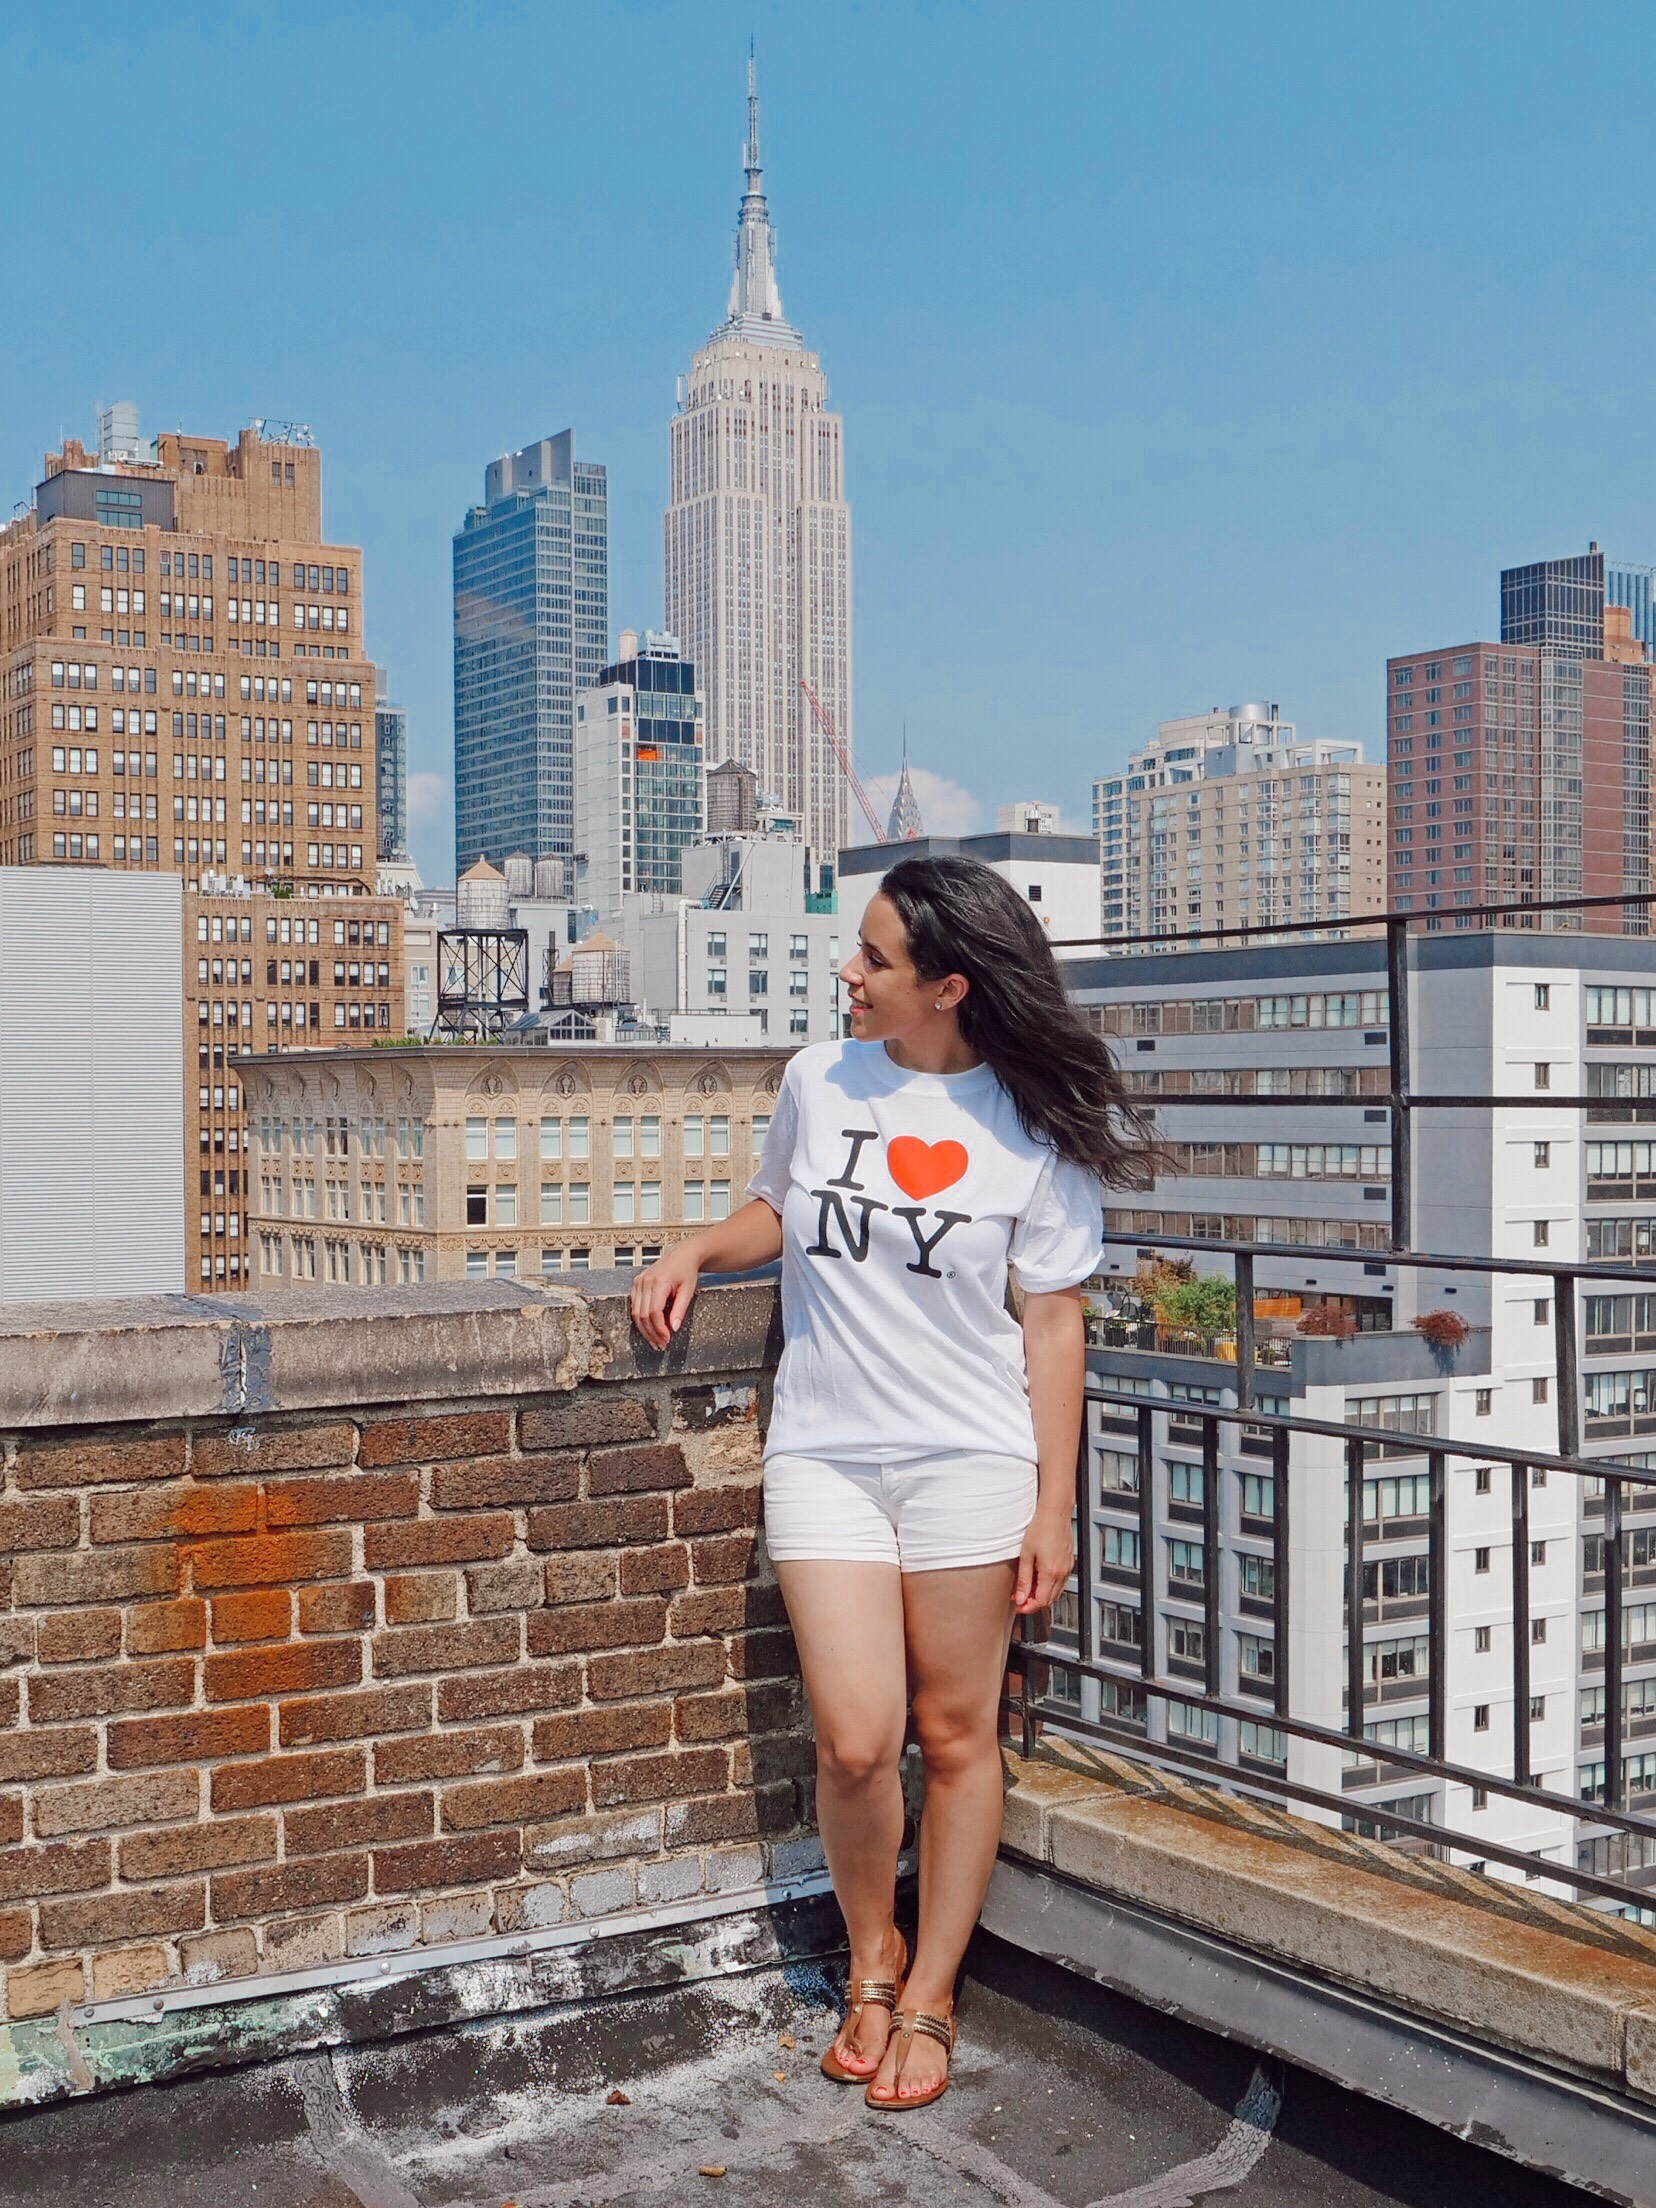 New York Myth: New Yorkers Rep NYC Gear